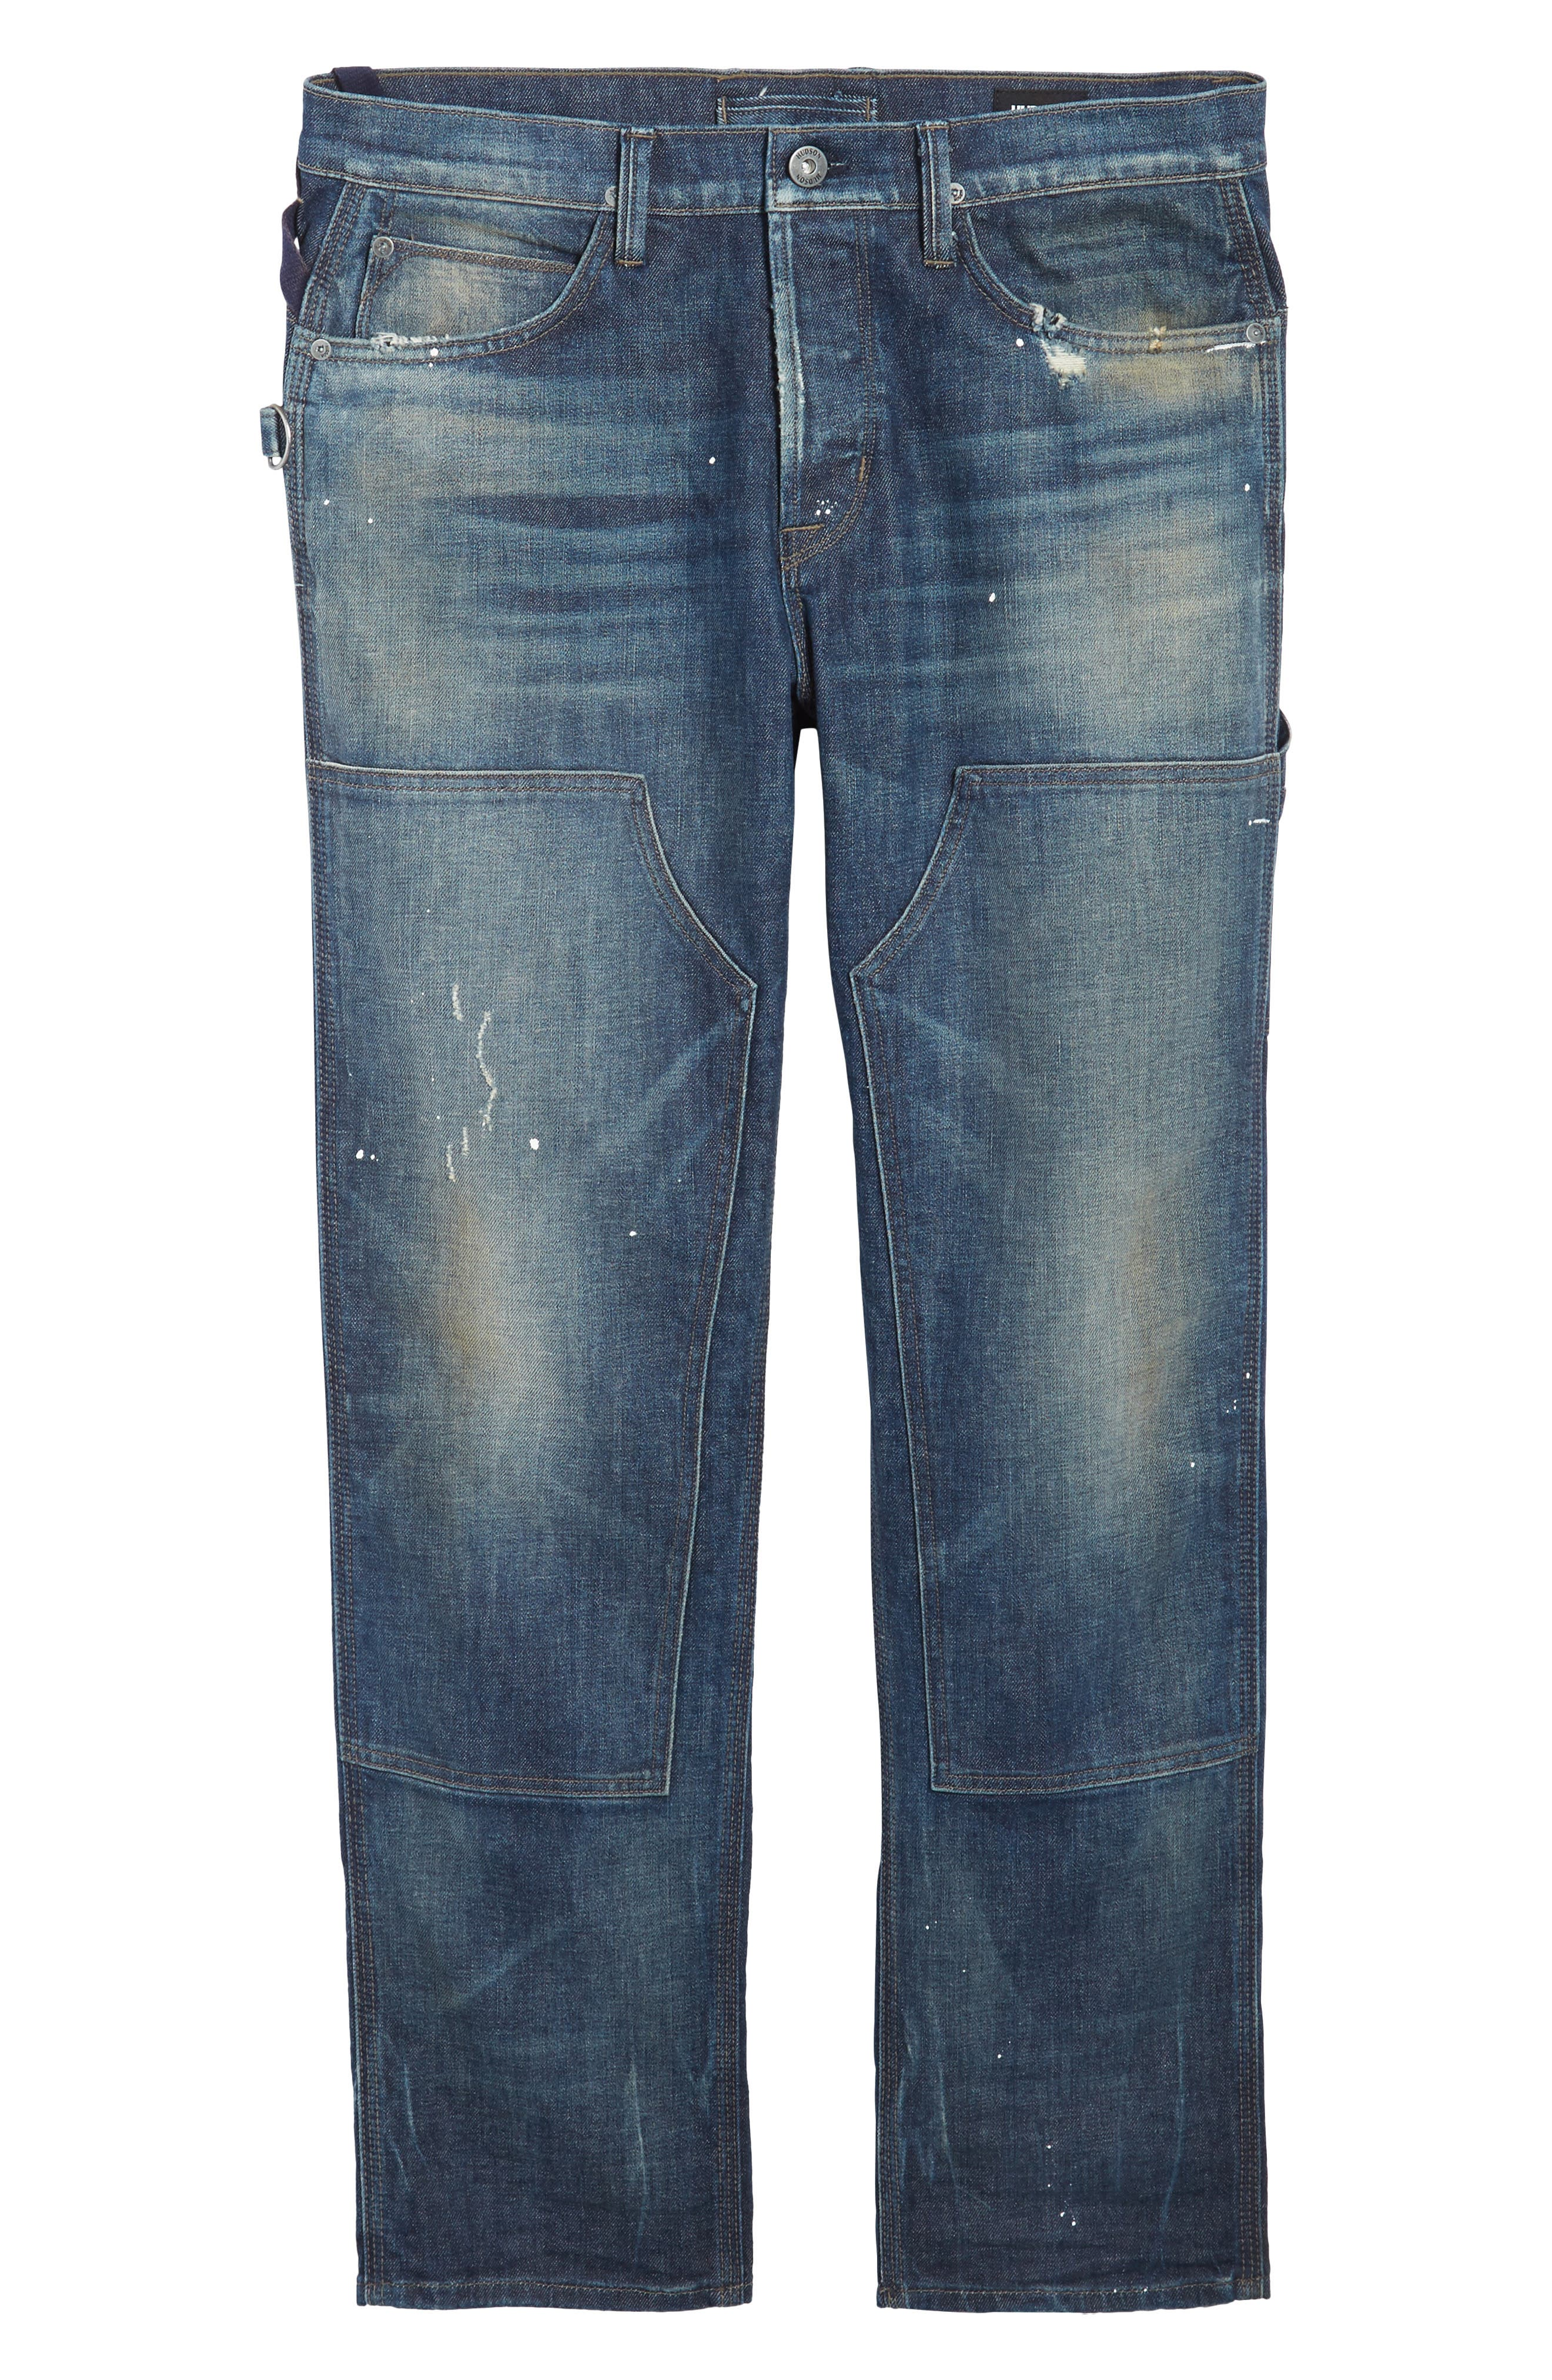 Hunter Straight Fit Jeans,                             Alternate thumbnail 6, color,                             422